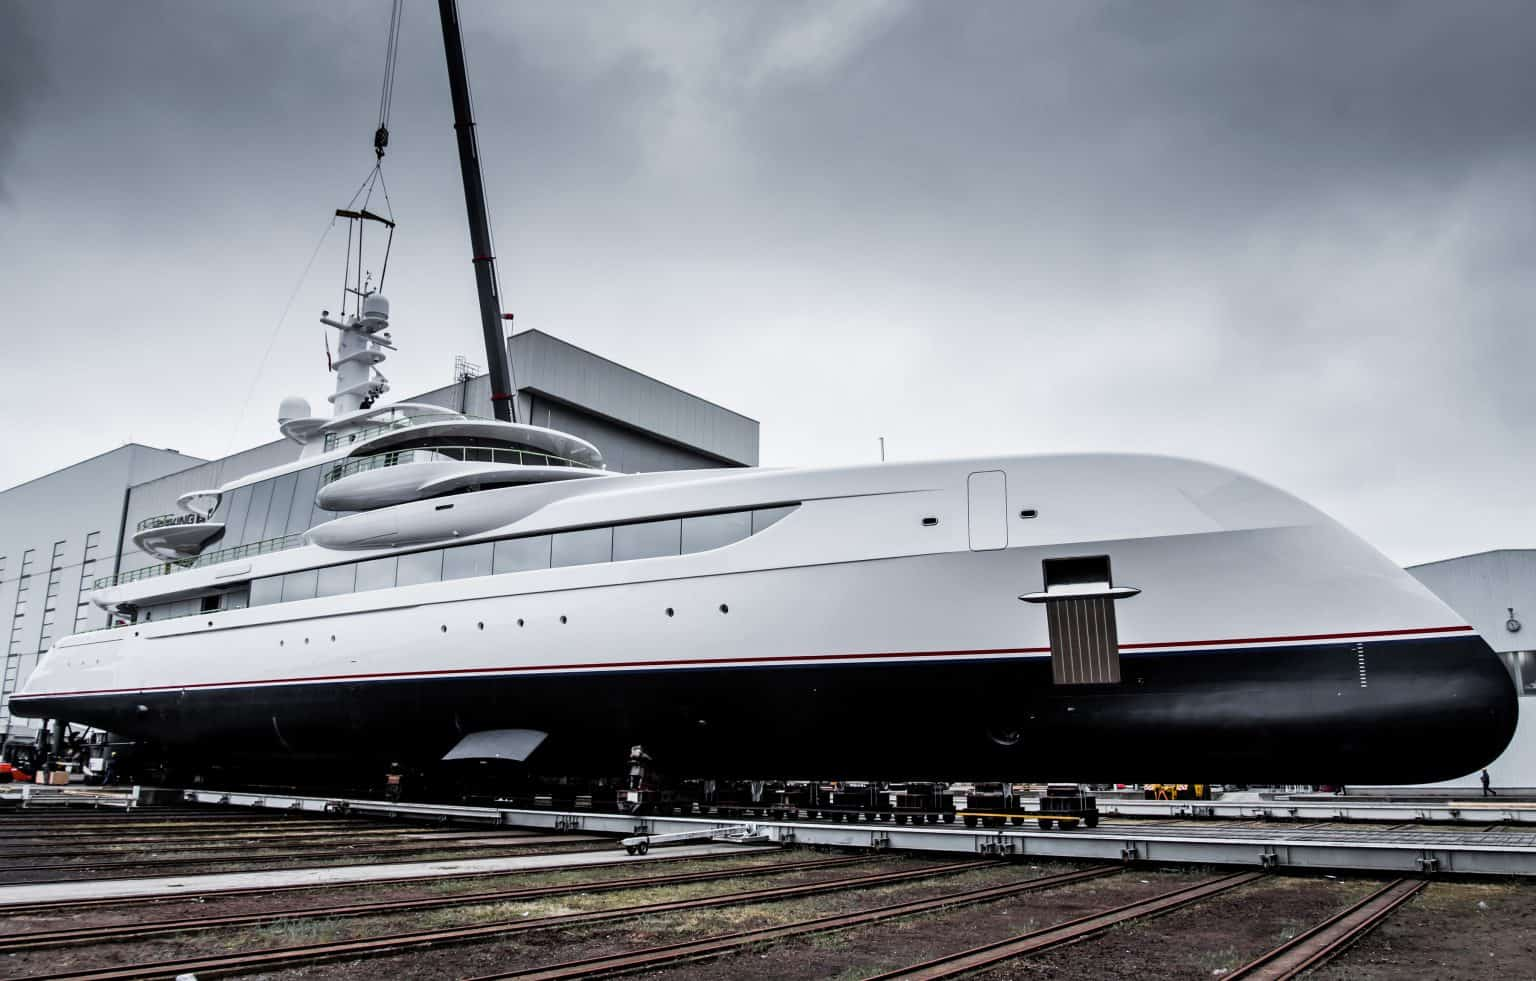 To Be Launched At The Yard